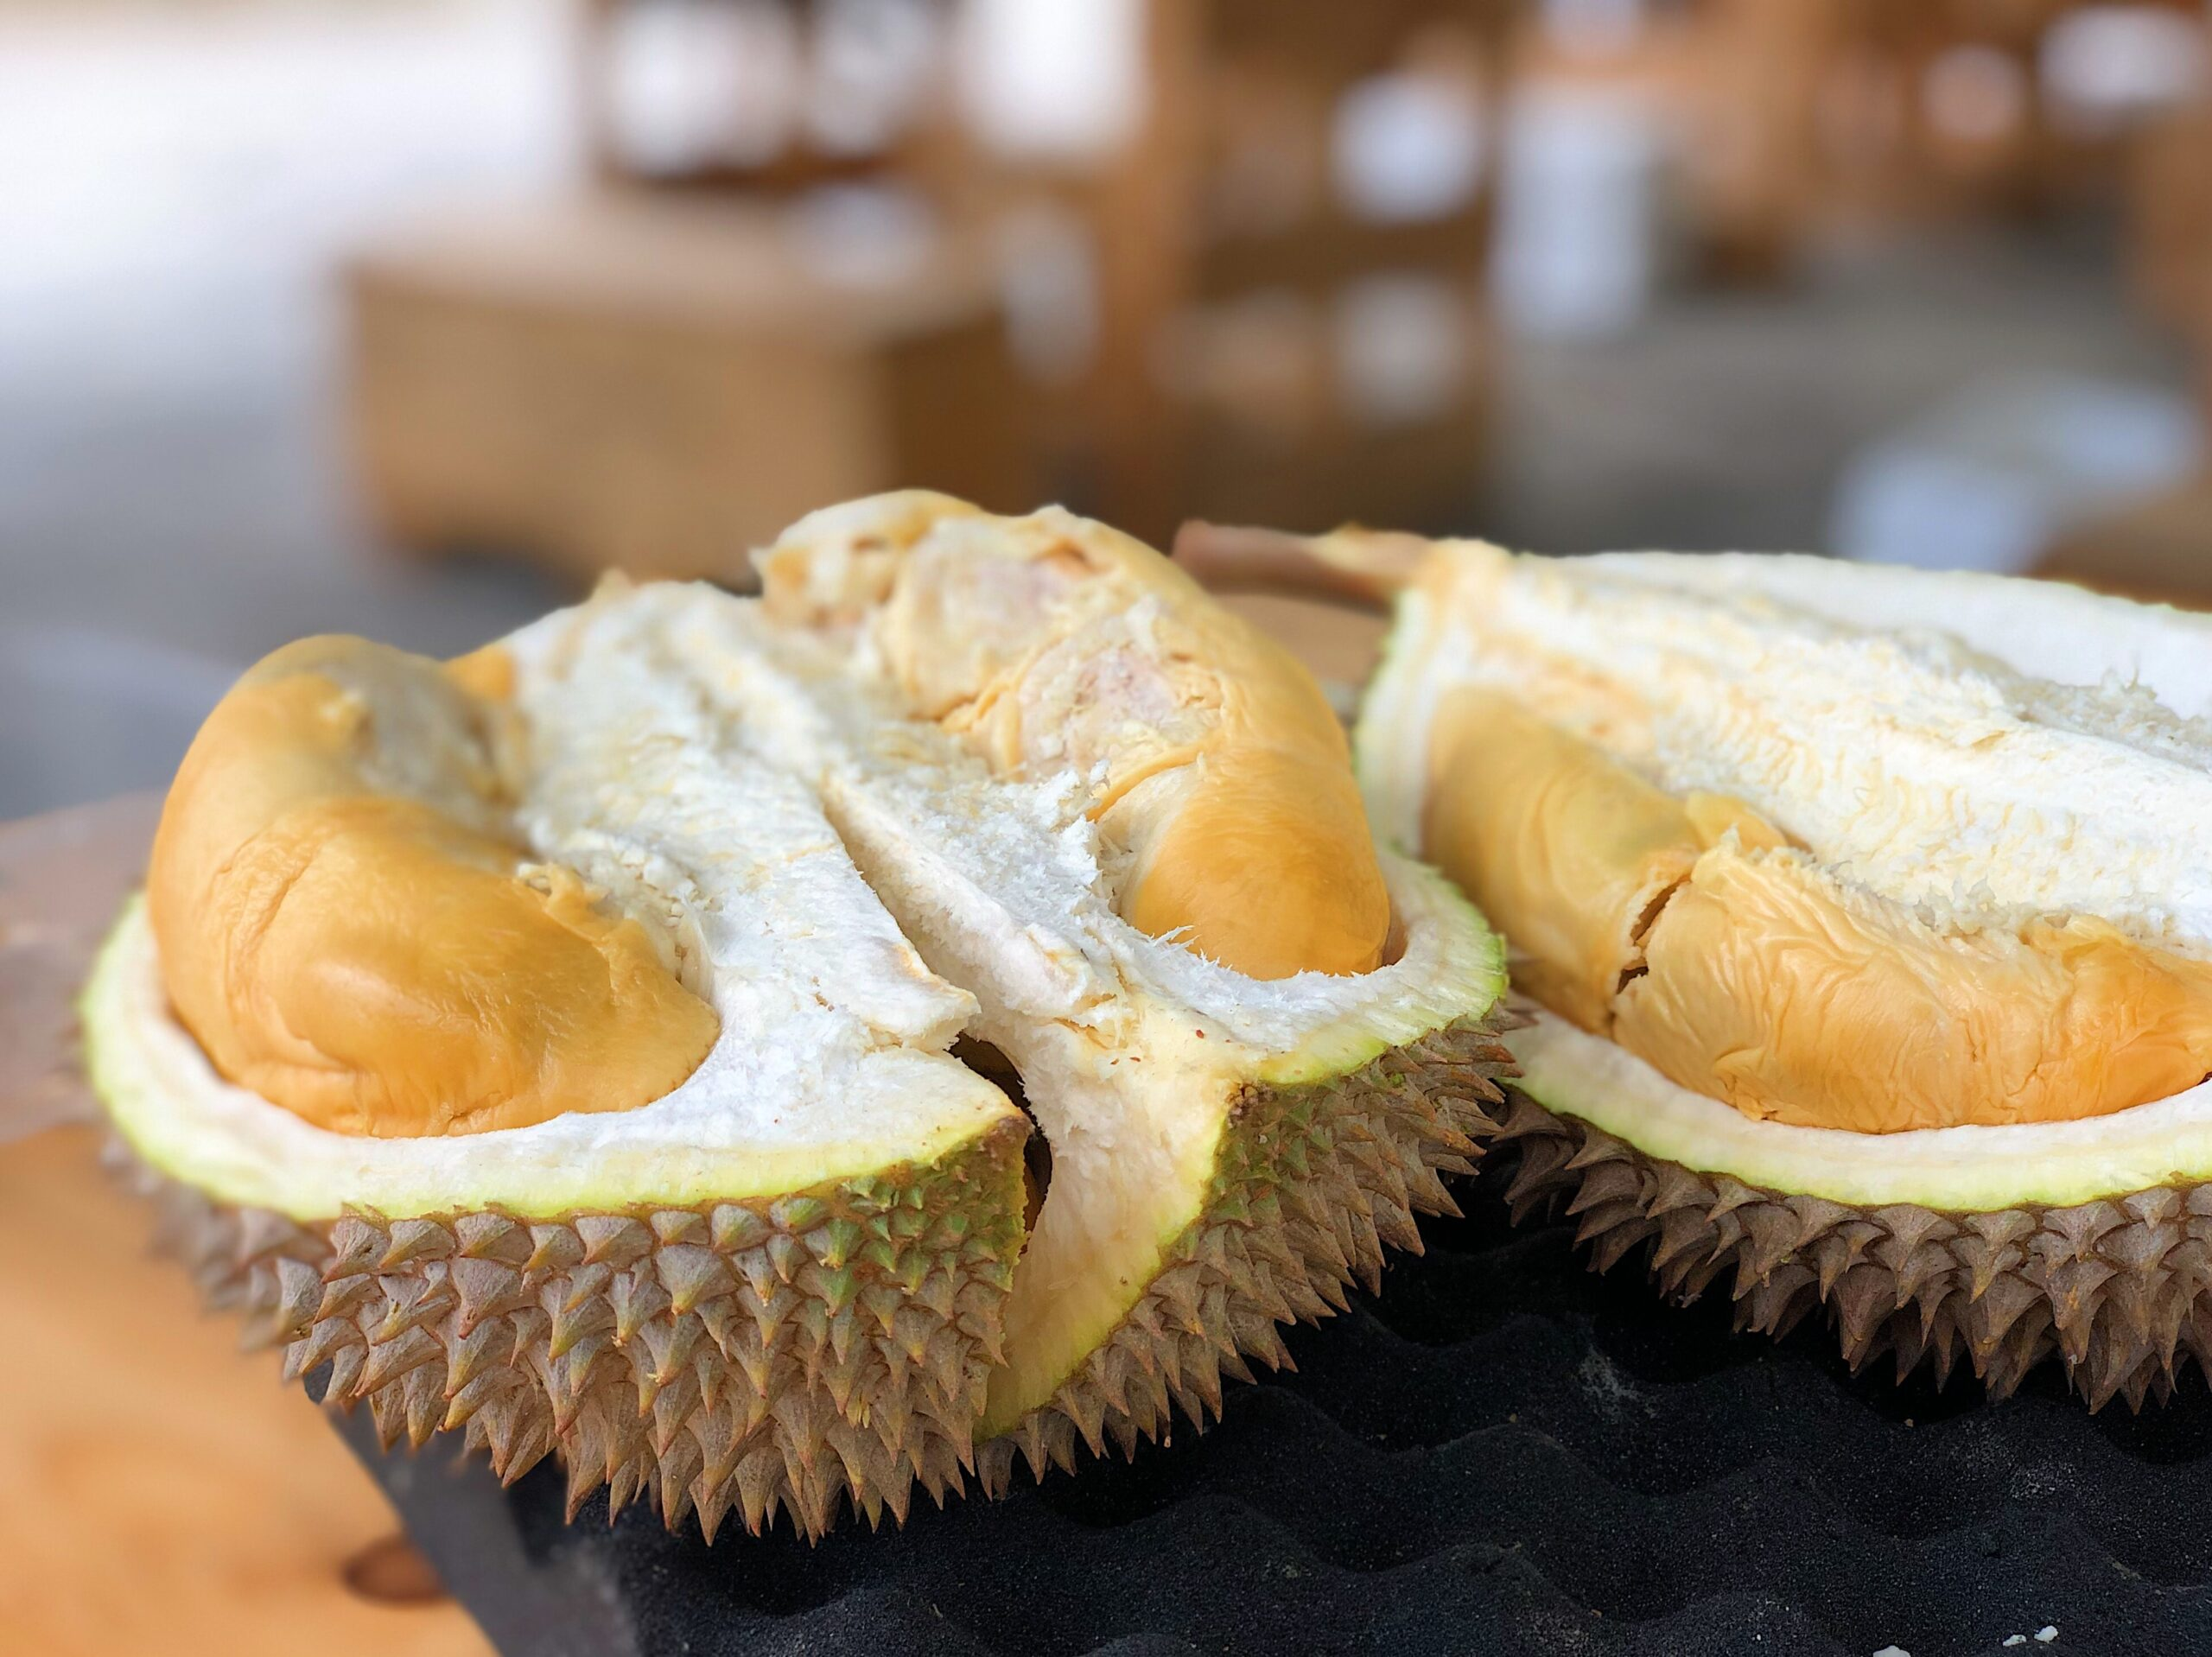 King of Fruits aka Durian tasting in Malaysia.